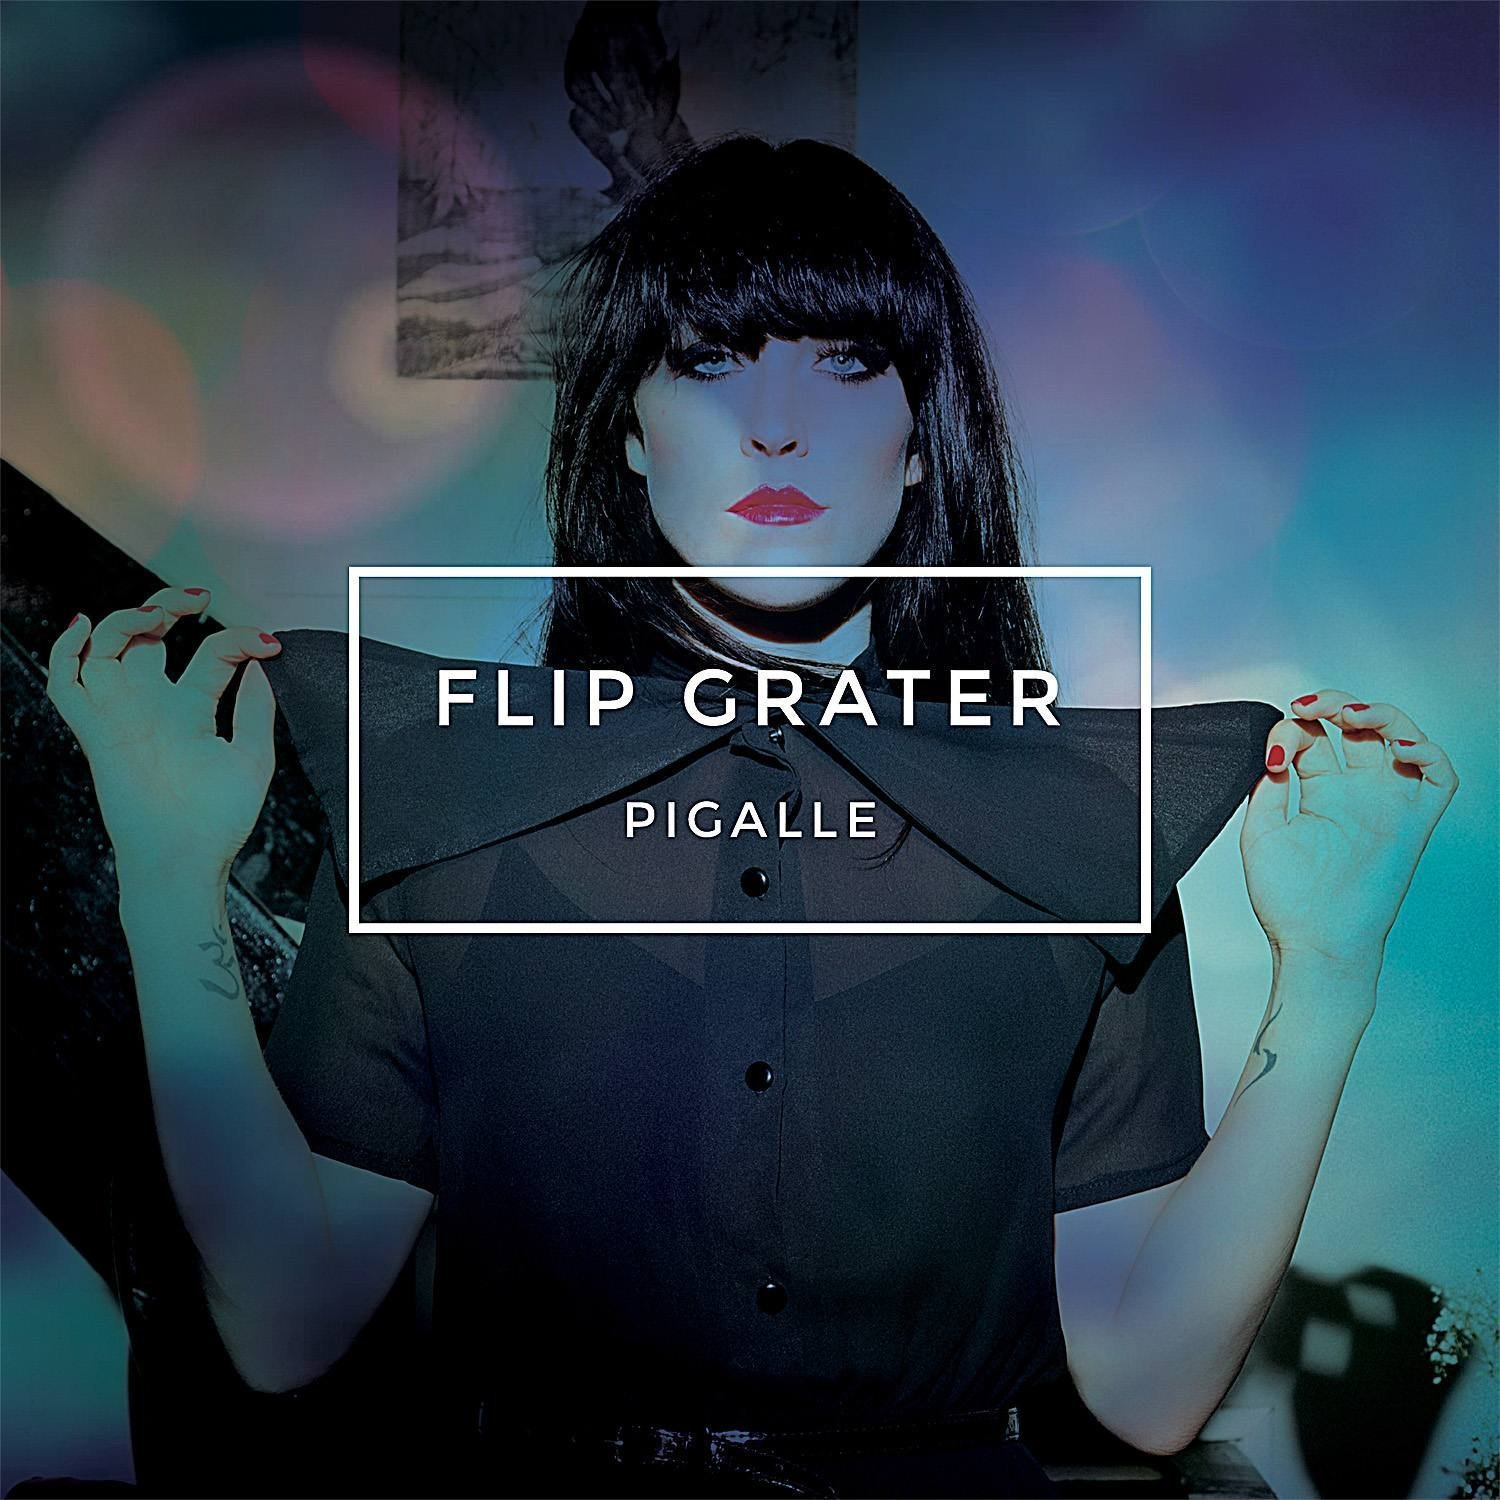 Pigalle by Flip Grater image